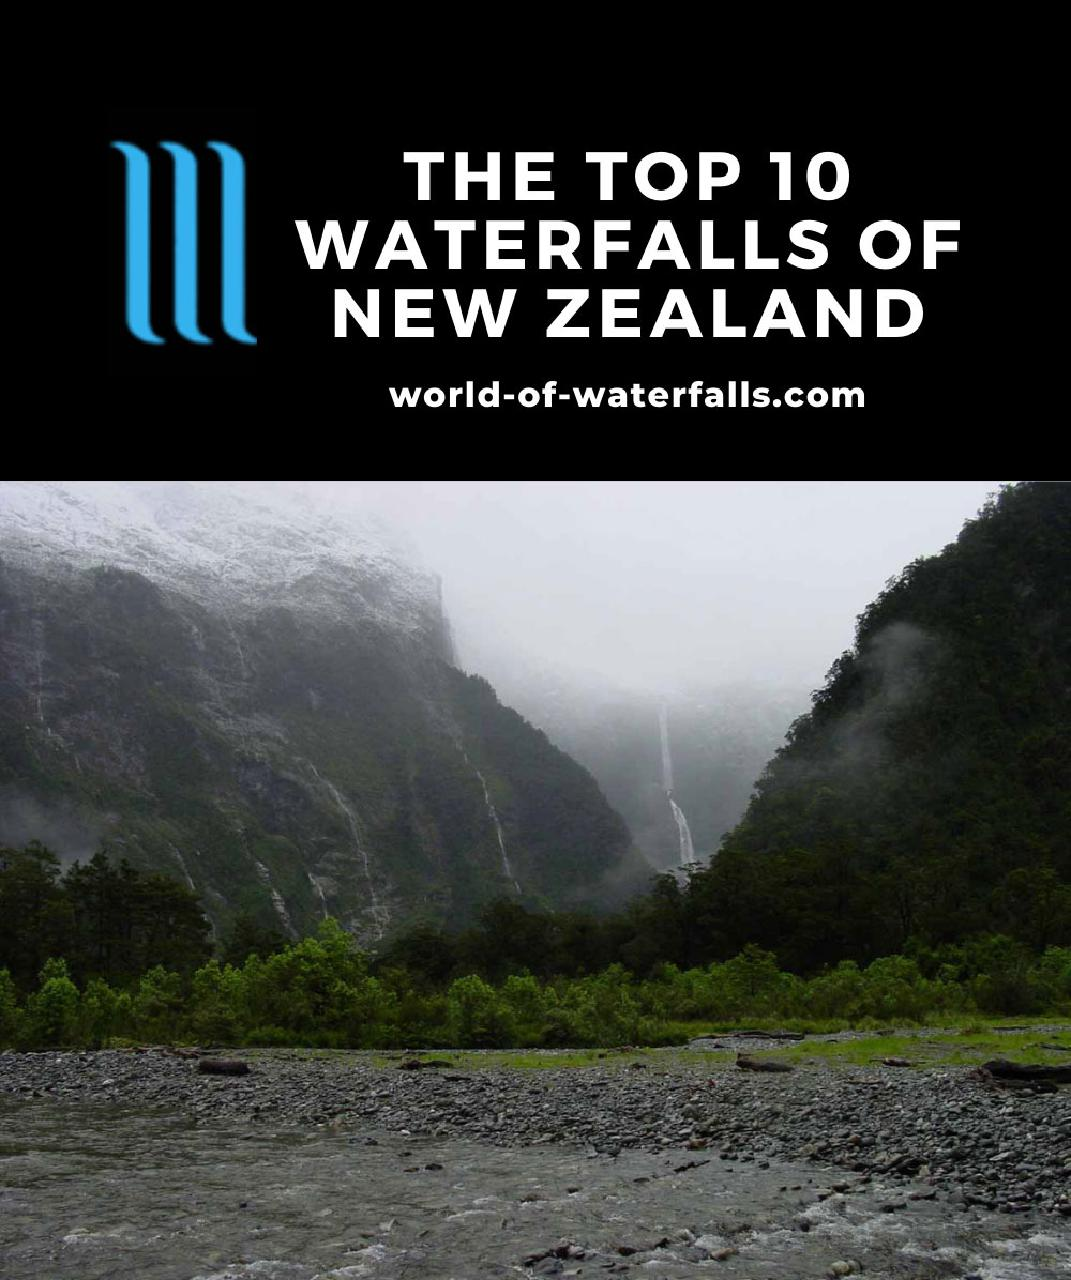 The Top 10 Waterfalls of New Zealand